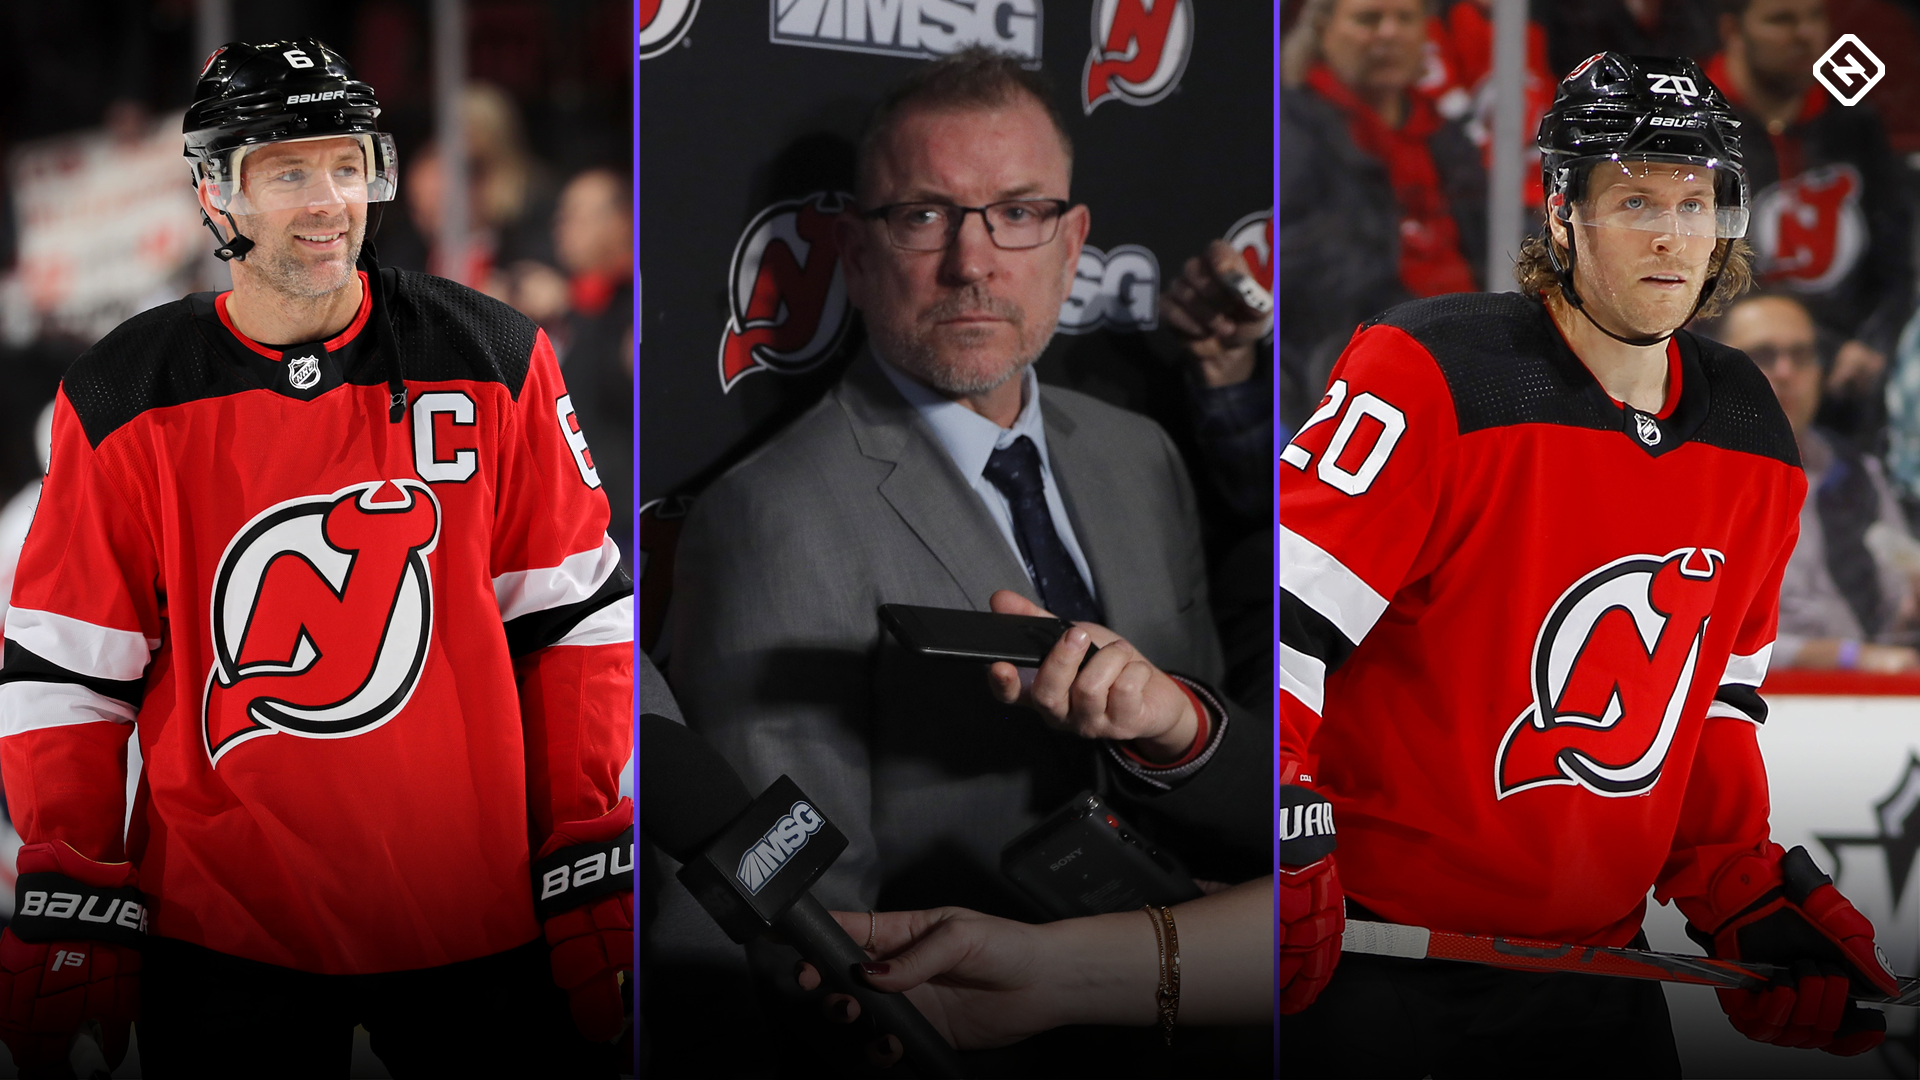 New Jersey Devils, once thought of as contenders, move forward with rebuild